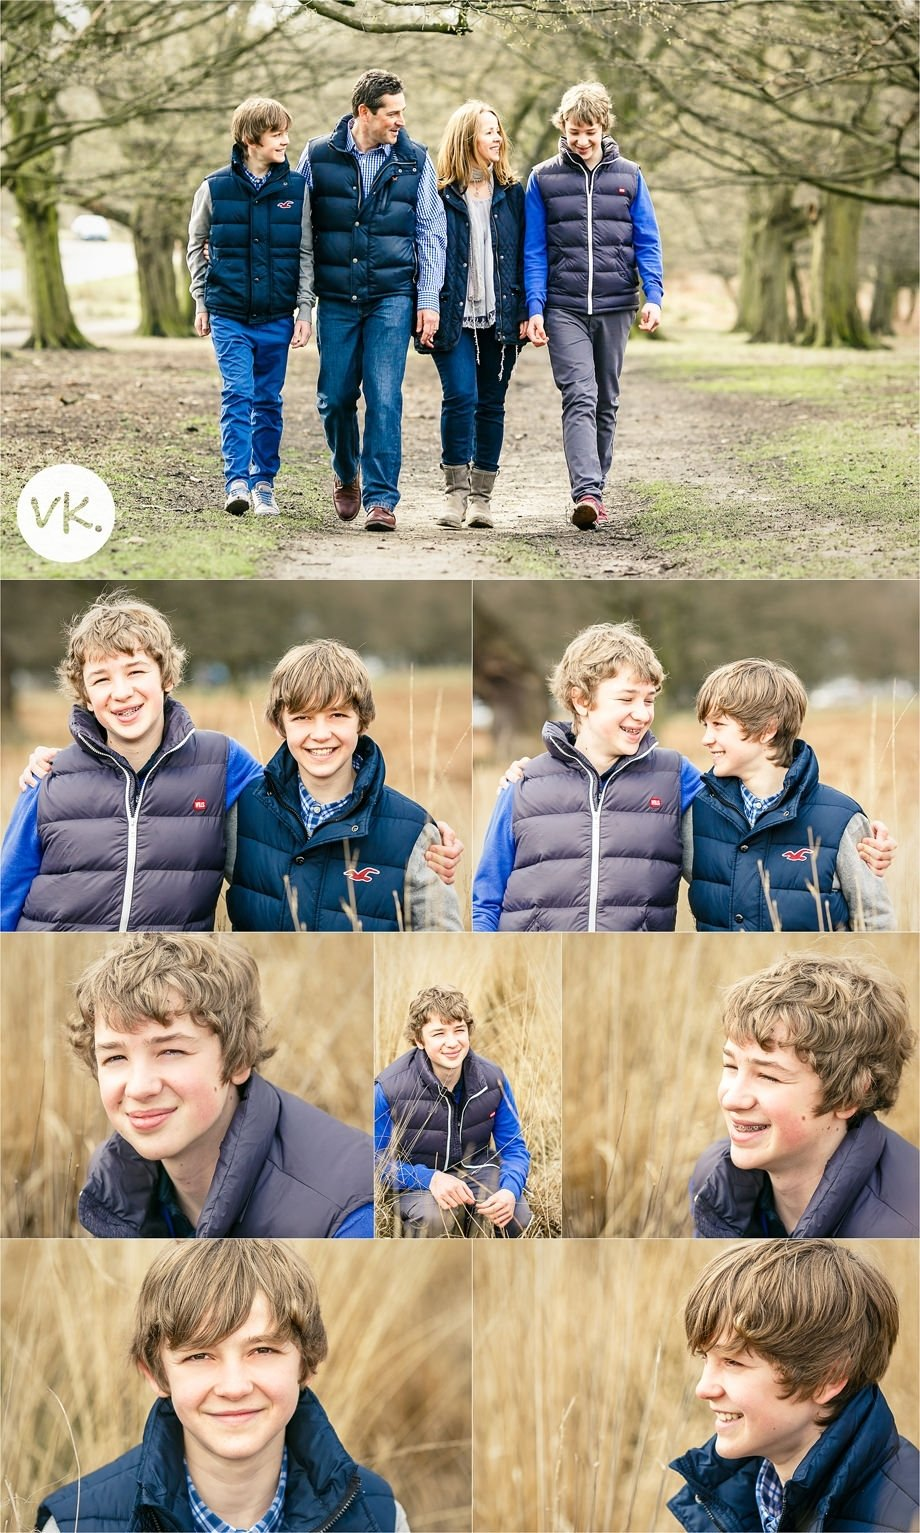 10 Trendy Family Photo Ideas With Teenagers a family photo shoot with teenagers vicki knights photography 2020